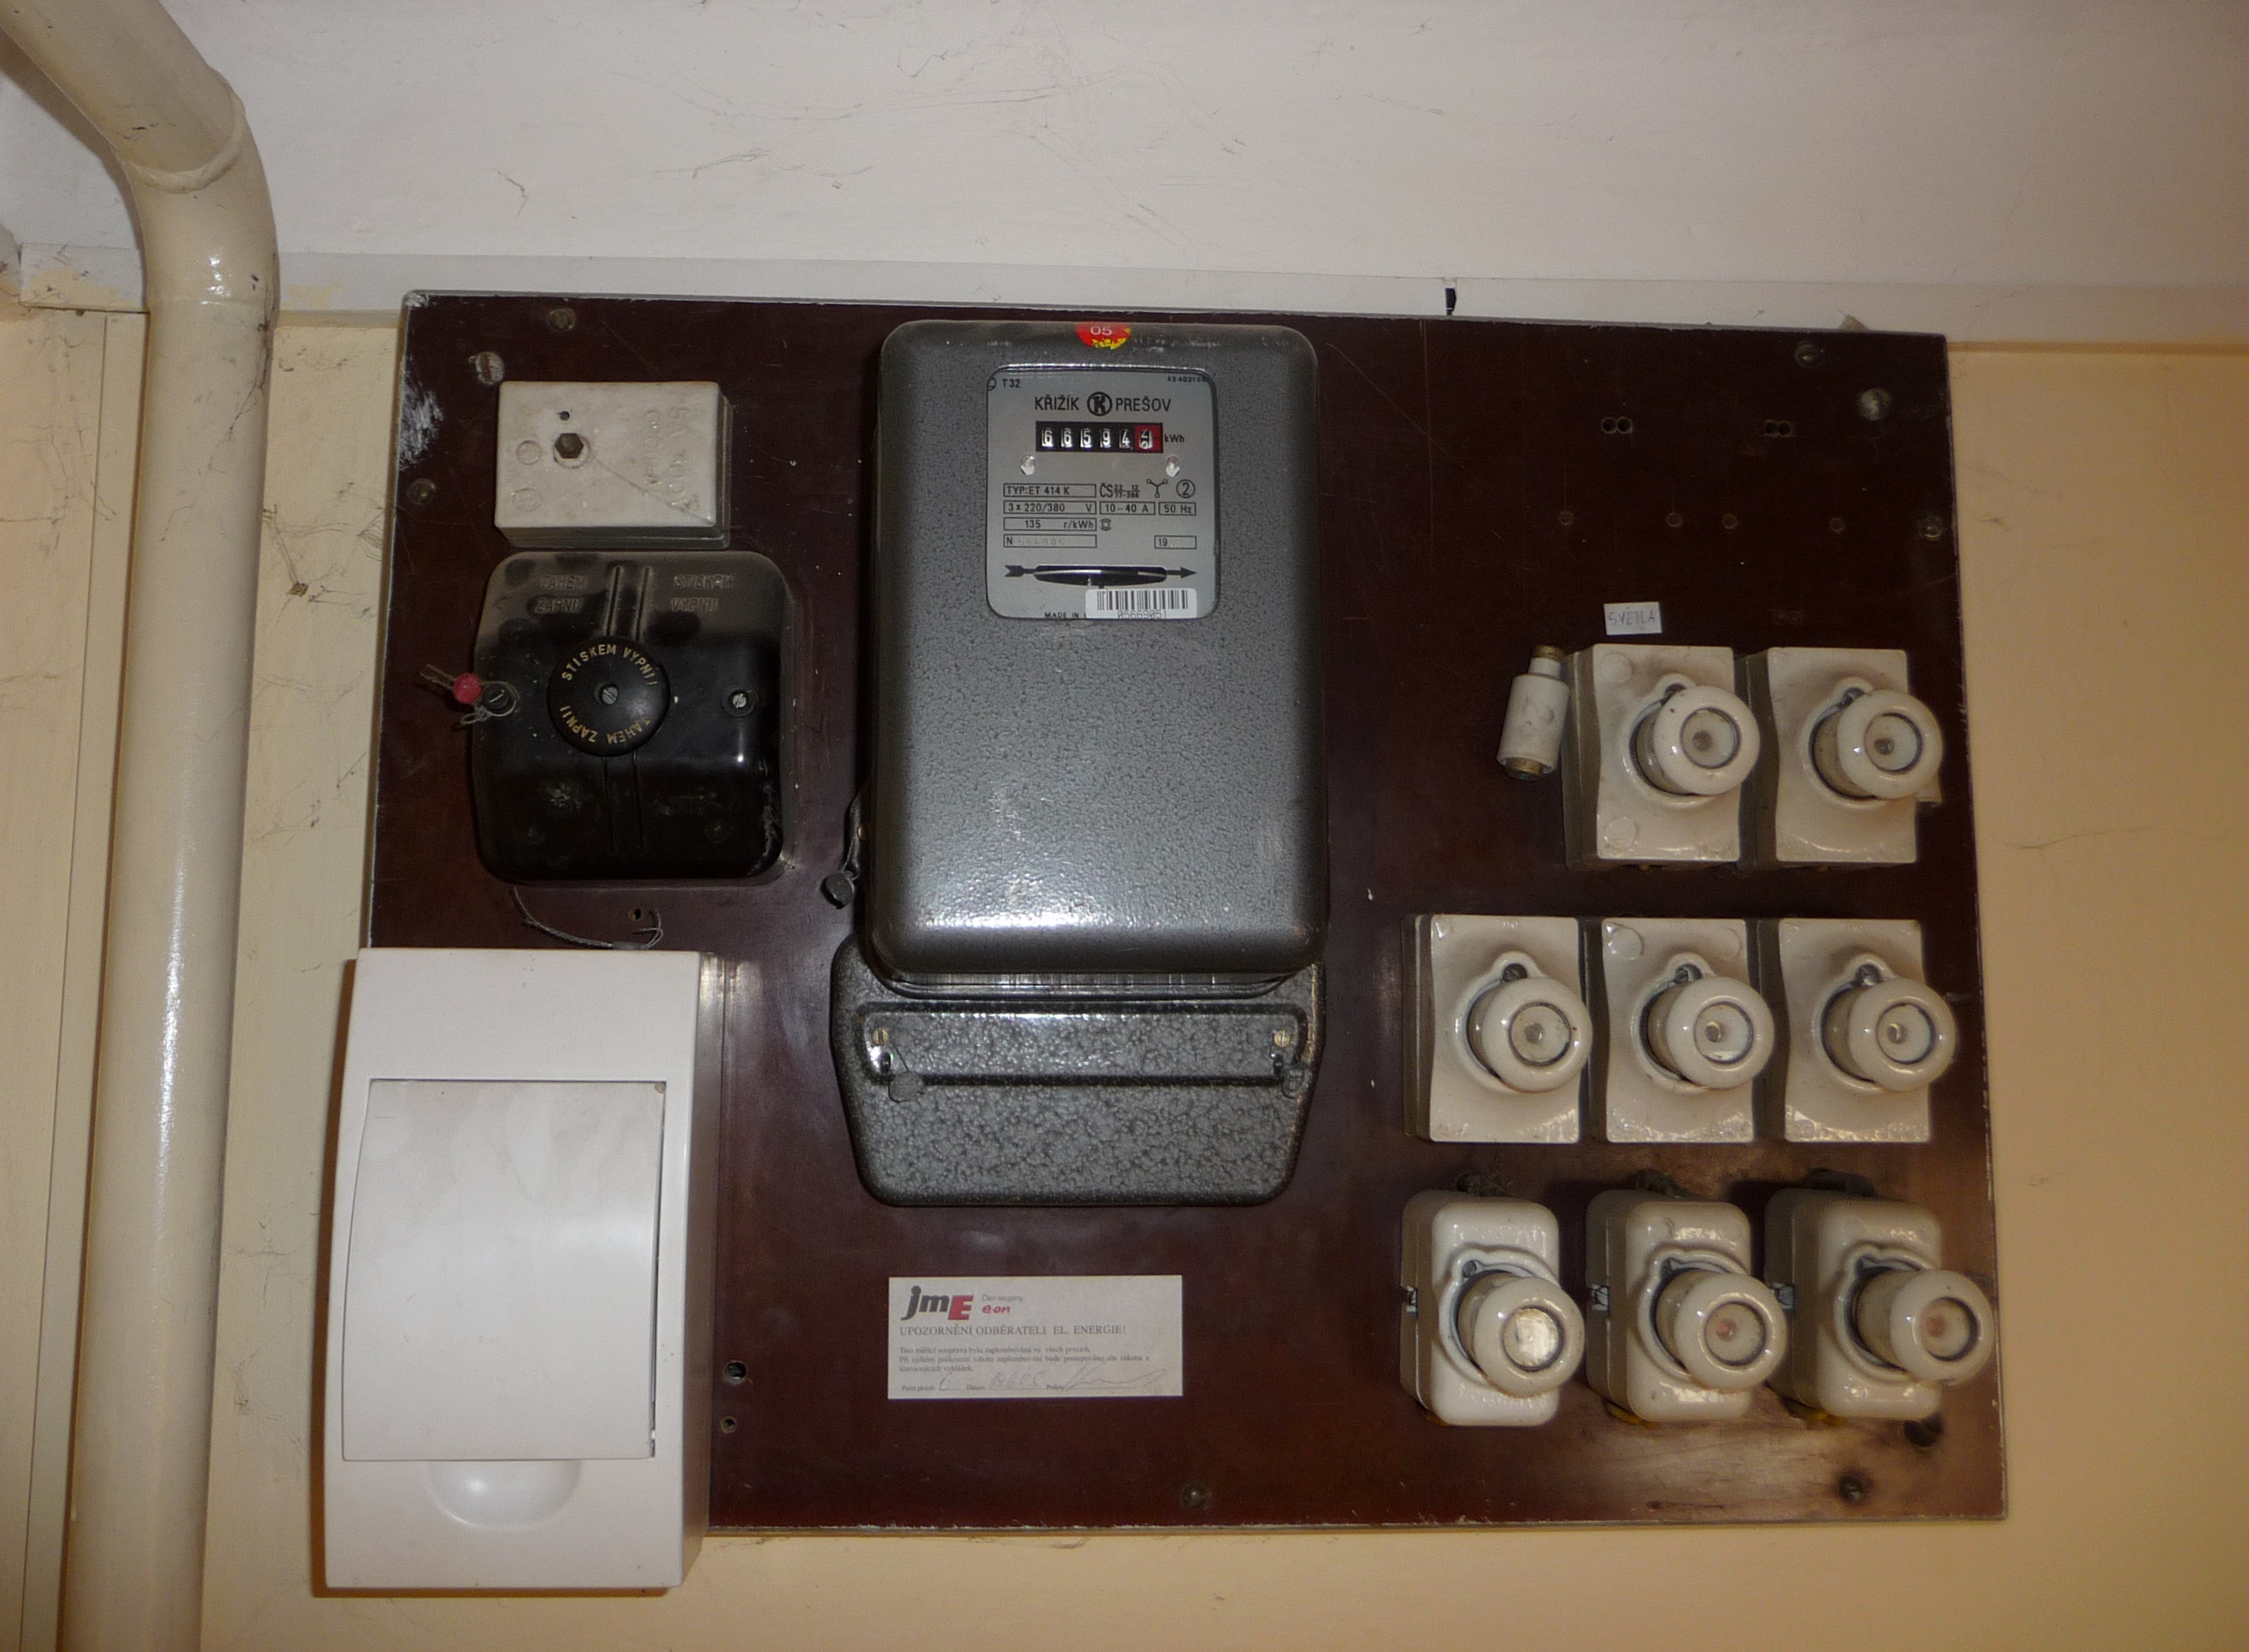 Czech_electricity_meter_and_fuse_box file czech electricity meter and fuse box jpg wikimedia commons fuse box definition at panicattacktreatment.co